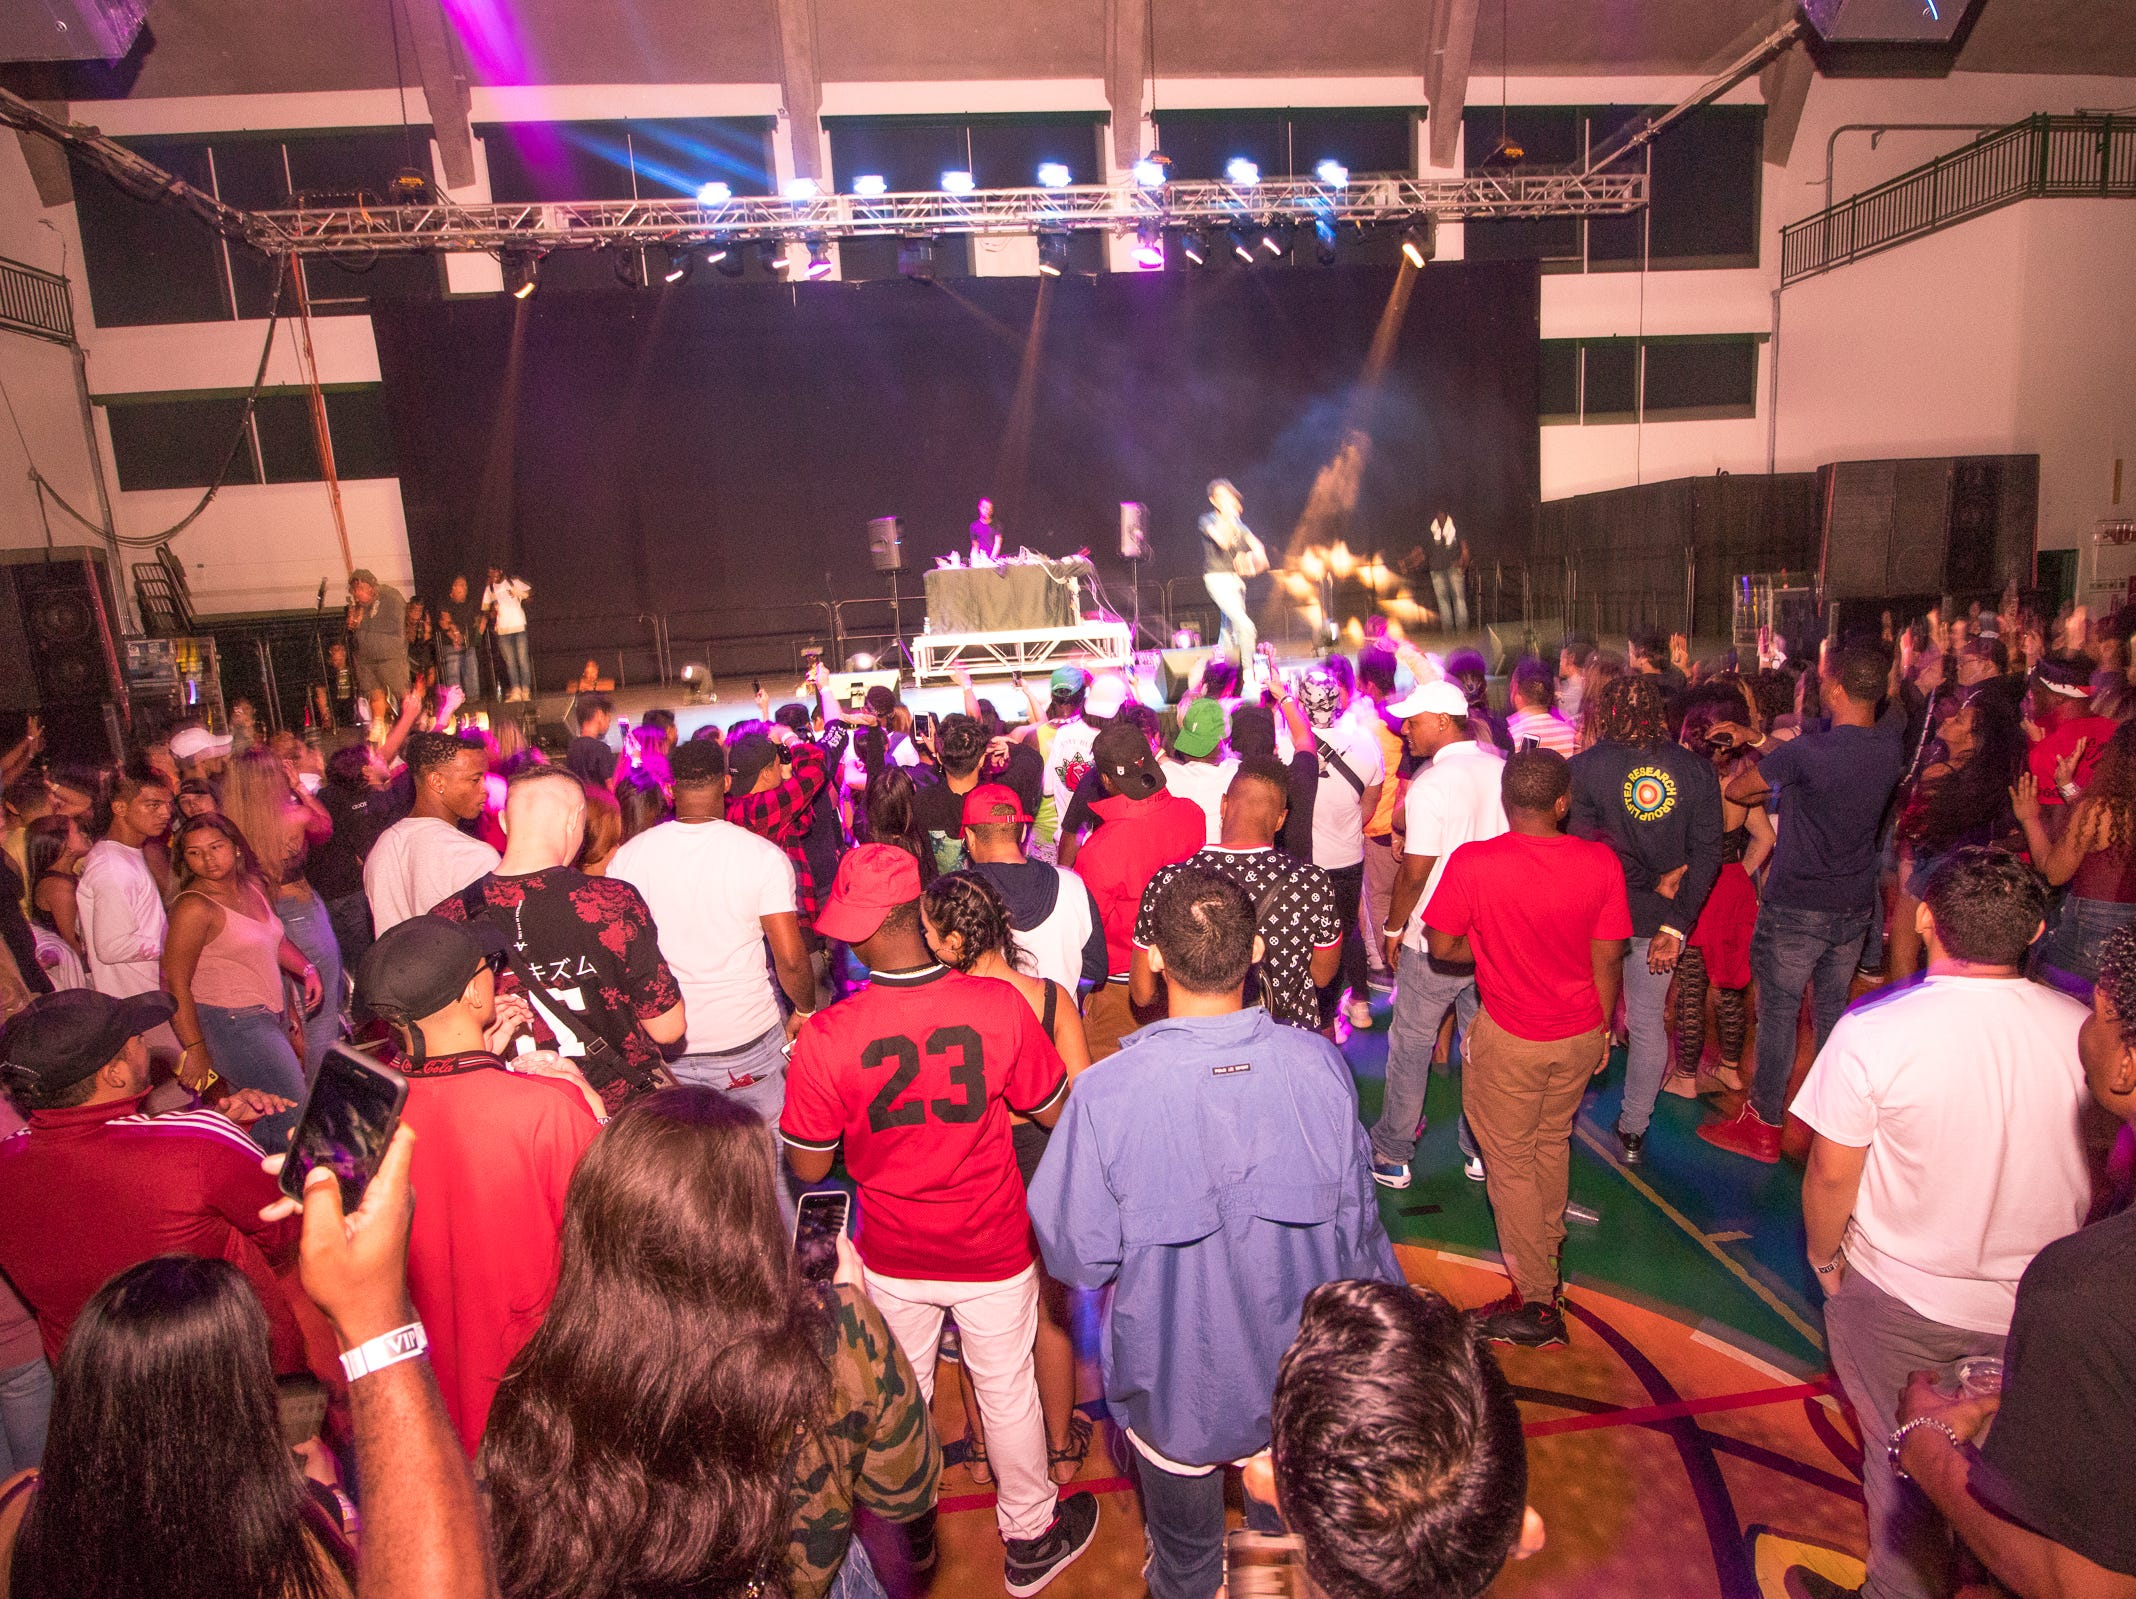 Fans cheer and sing along with PnB Rock at the University of Guam Calvo Fieldhouse on July 29.